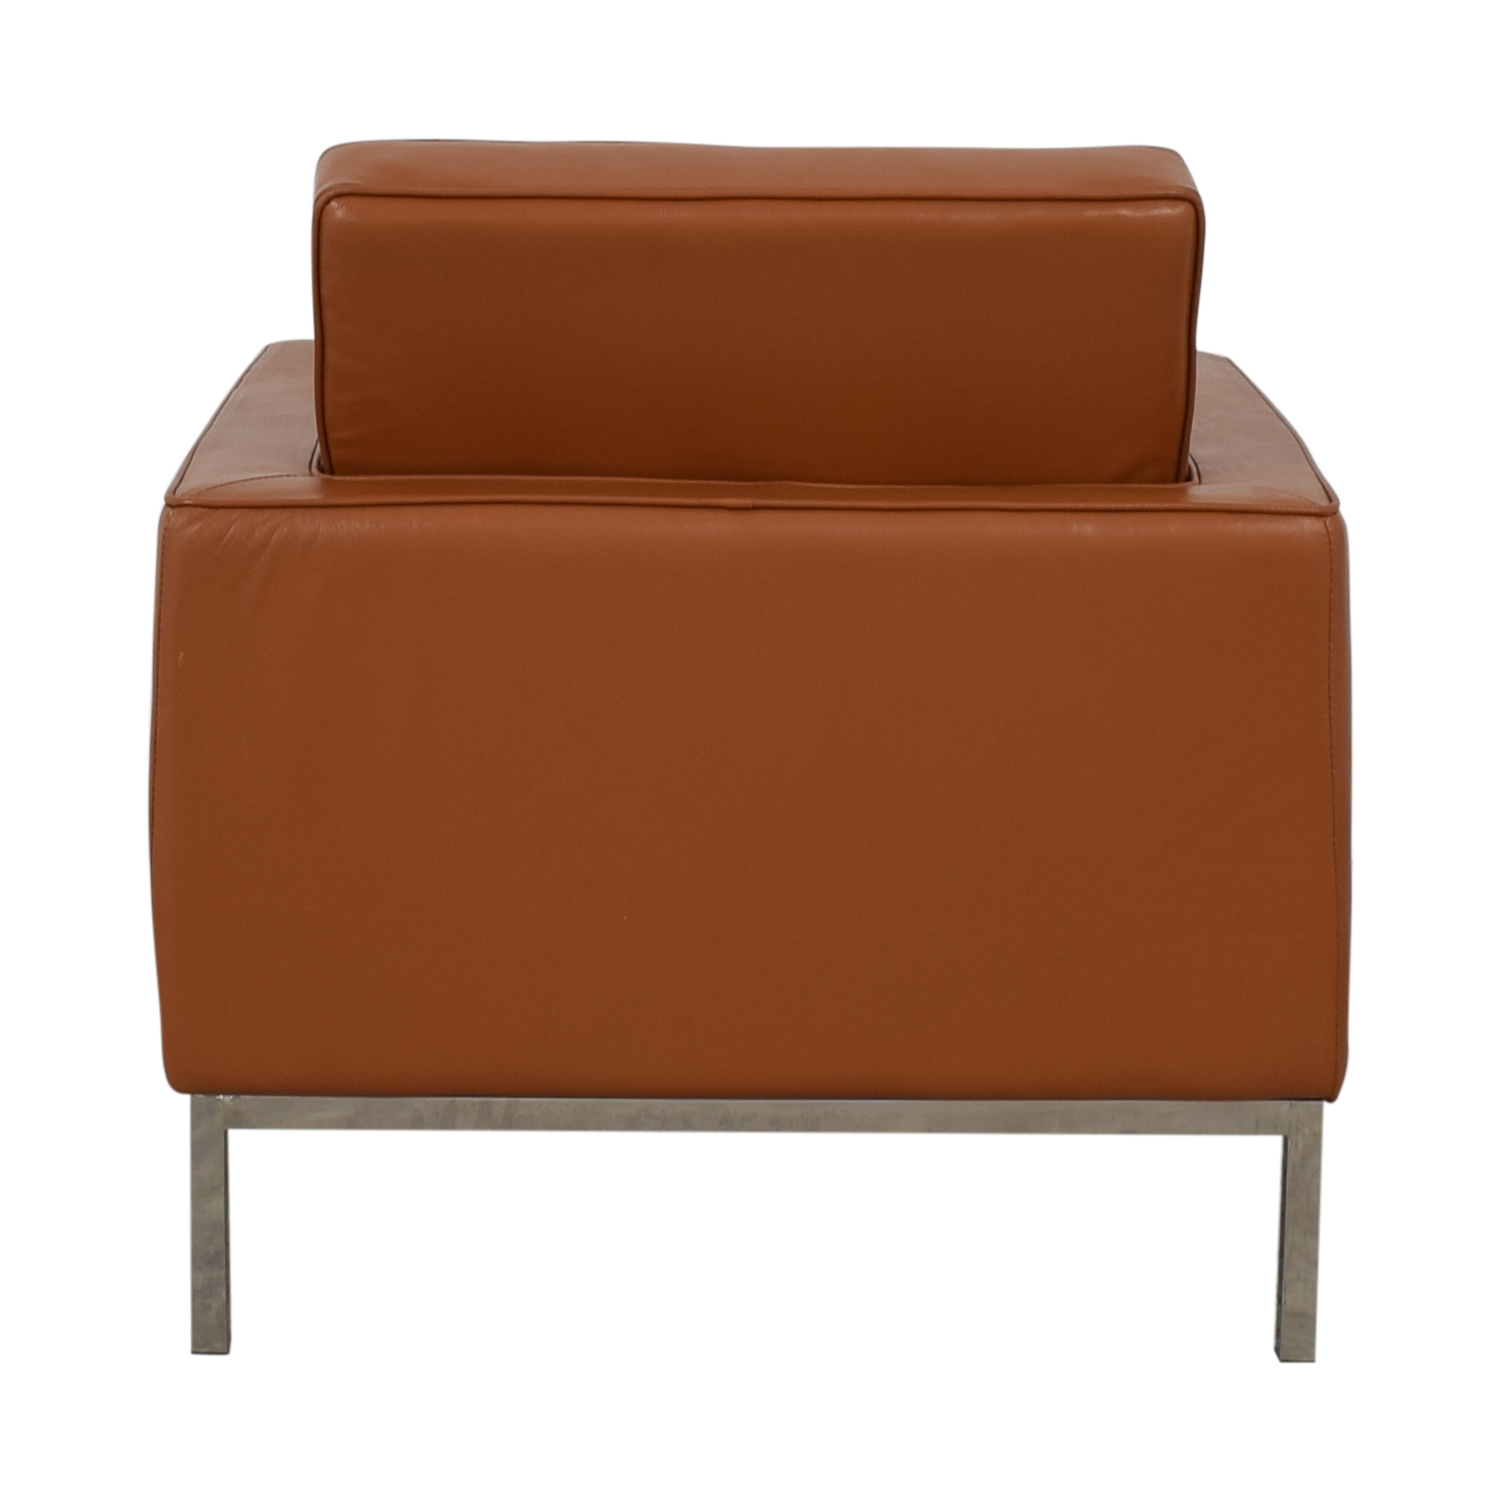 Kardiel Kardiel Brown Leather Chair discount